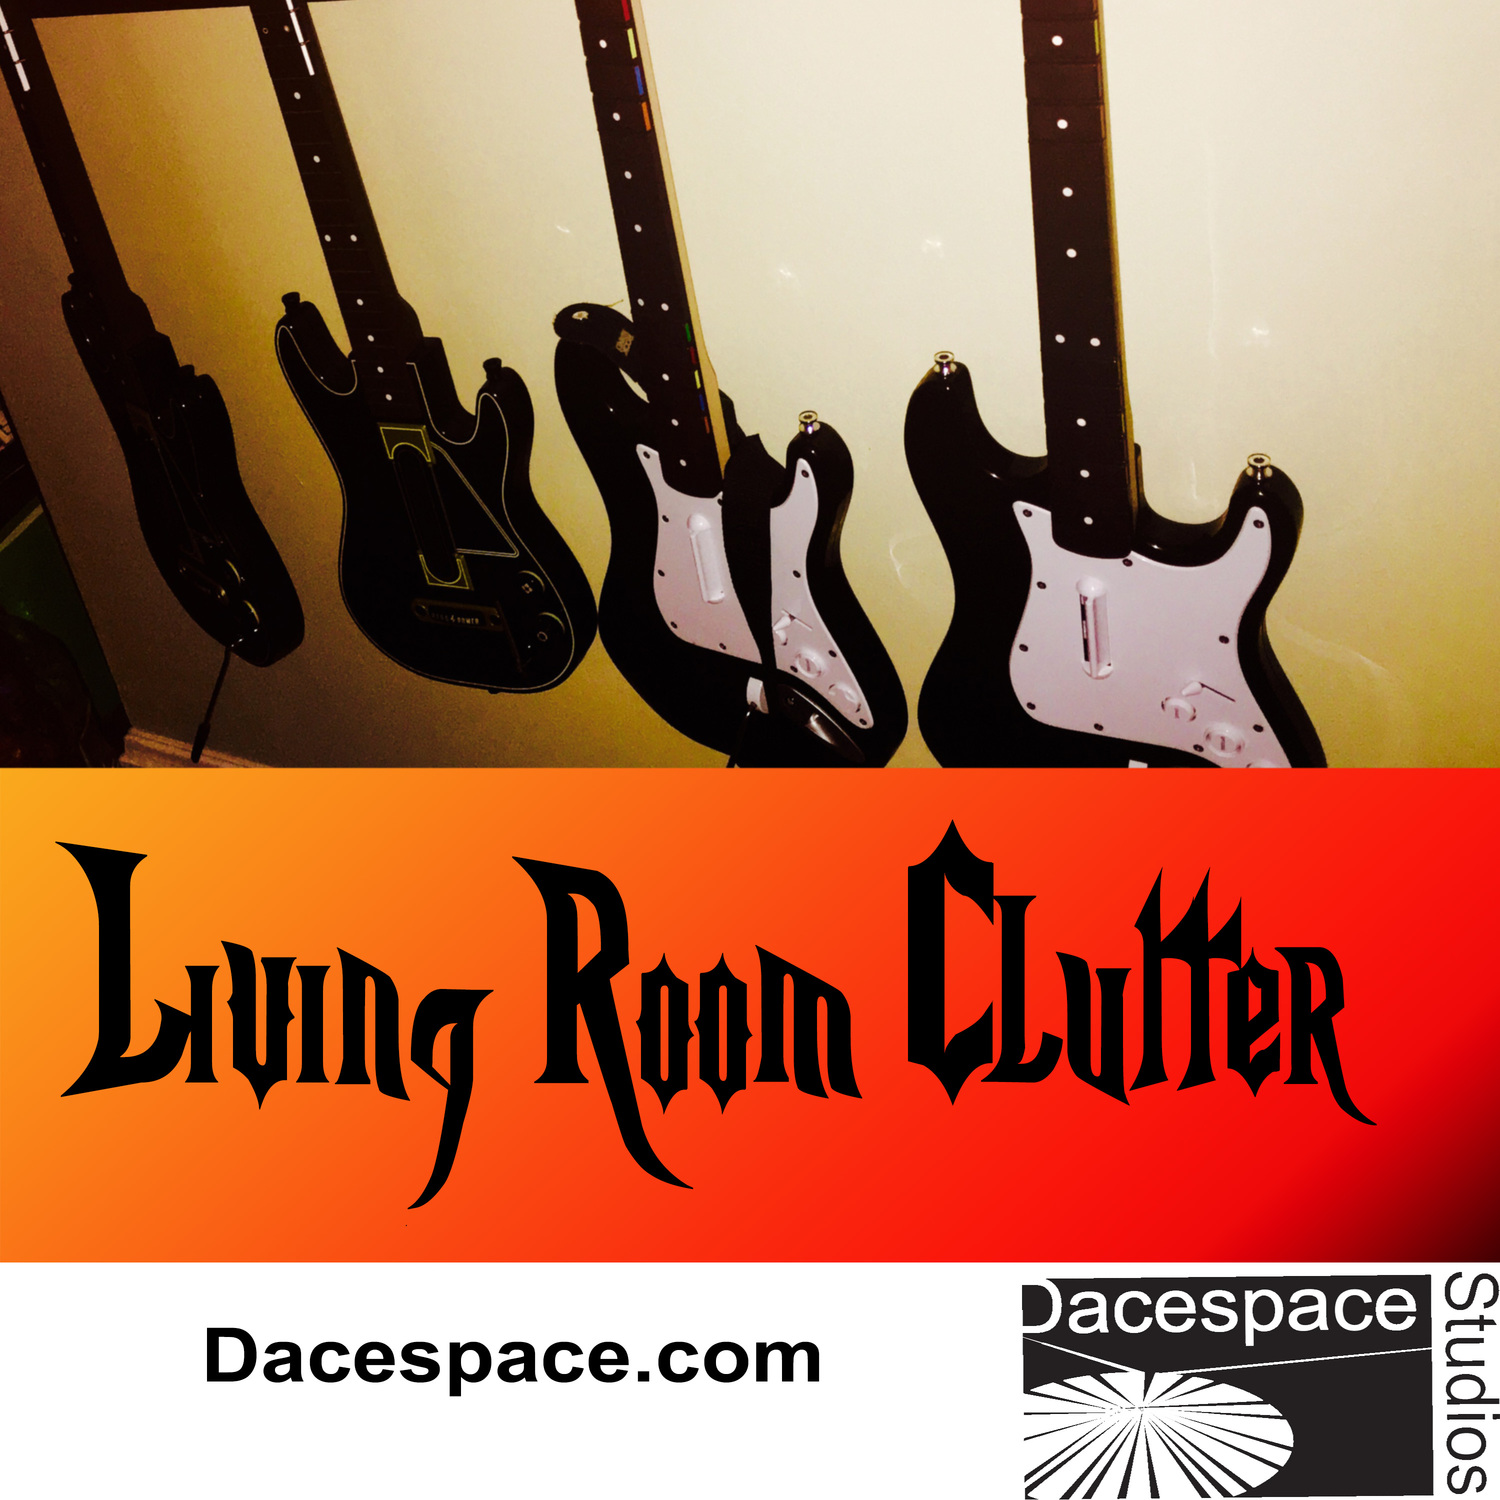 Living Room Clutter - Dacespace.com